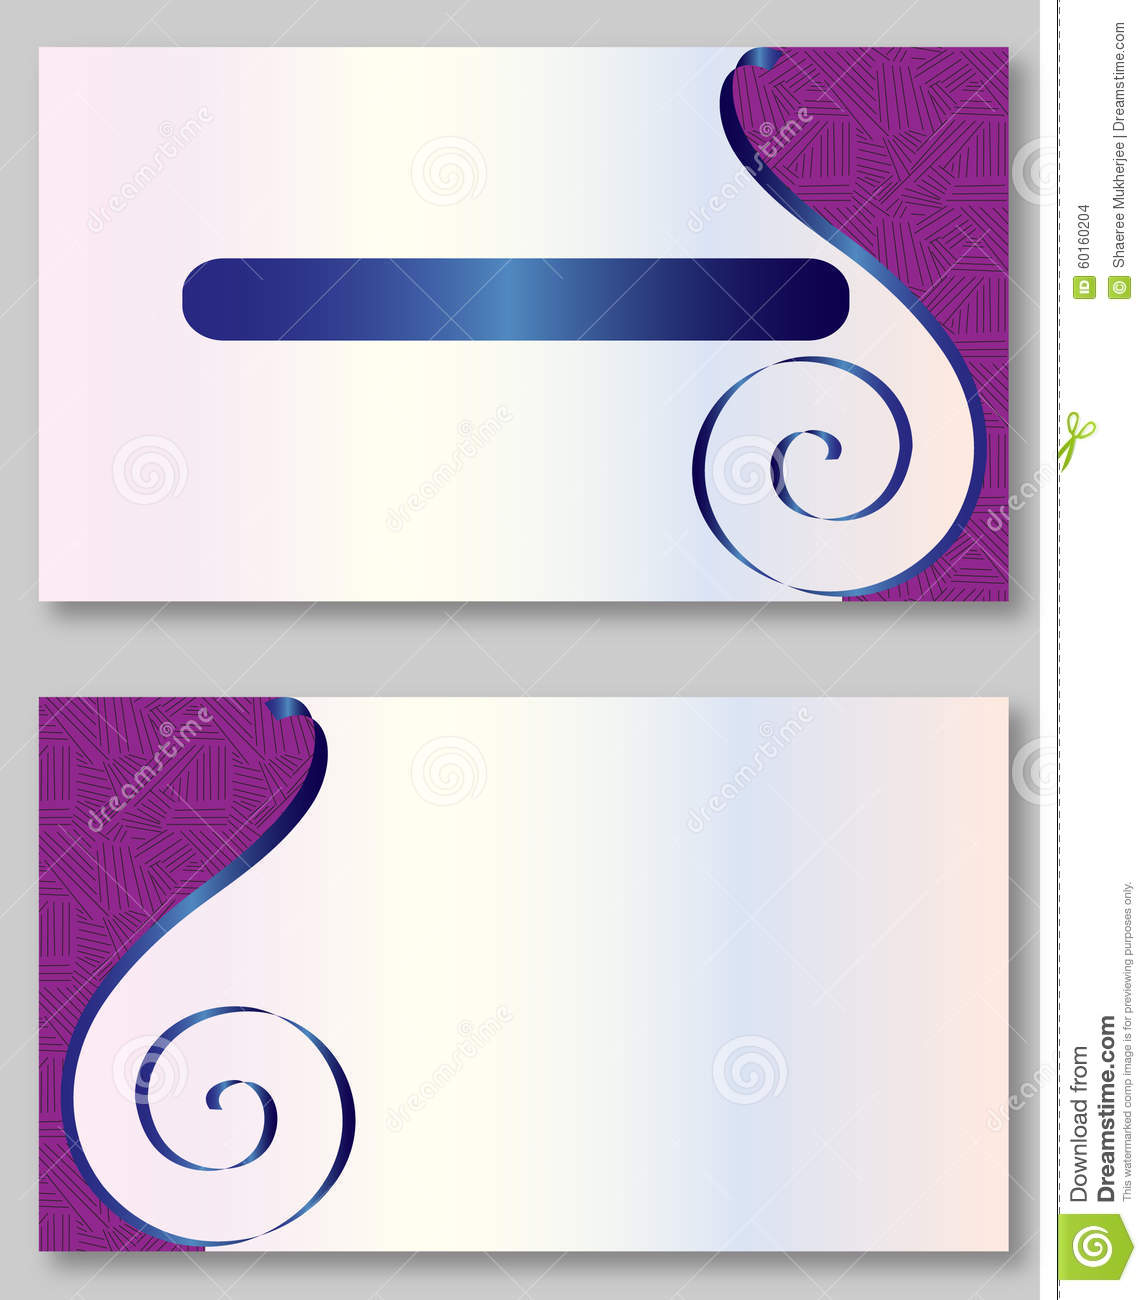 Purple Business Card Template Stock Vector - Illustration of ...